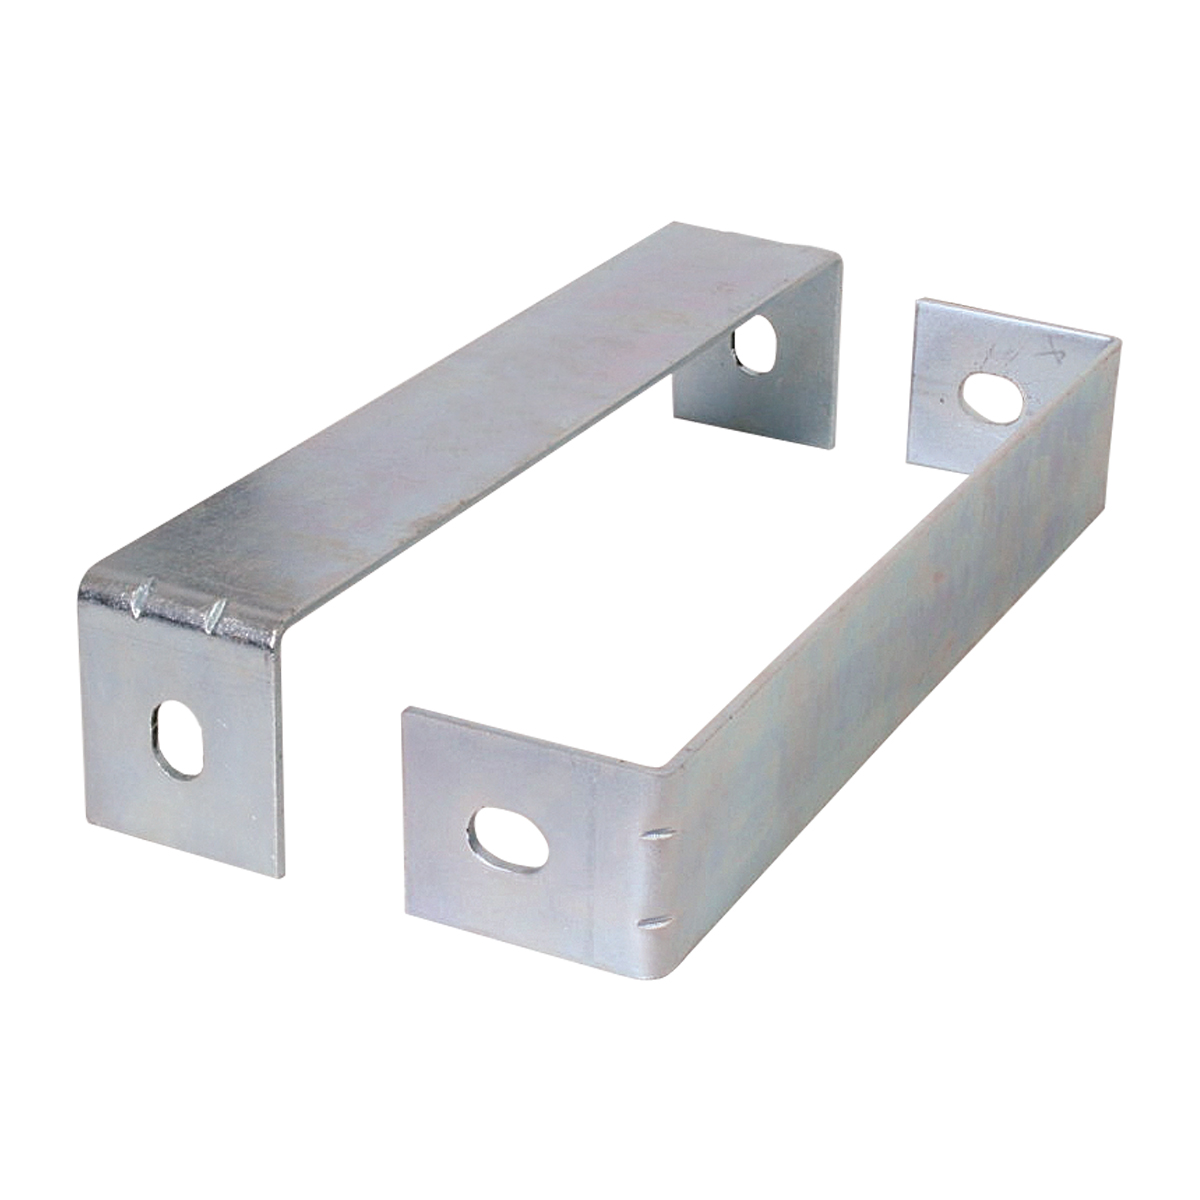 #91649 Stainless Steel Panel - Bracket